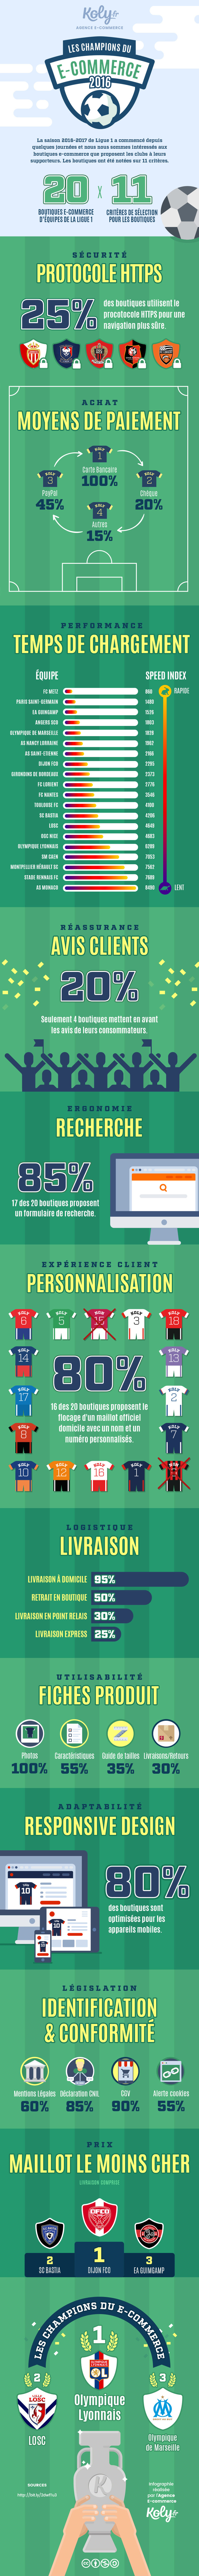 Le champion de France du e-commerce de football 2016 par Koly